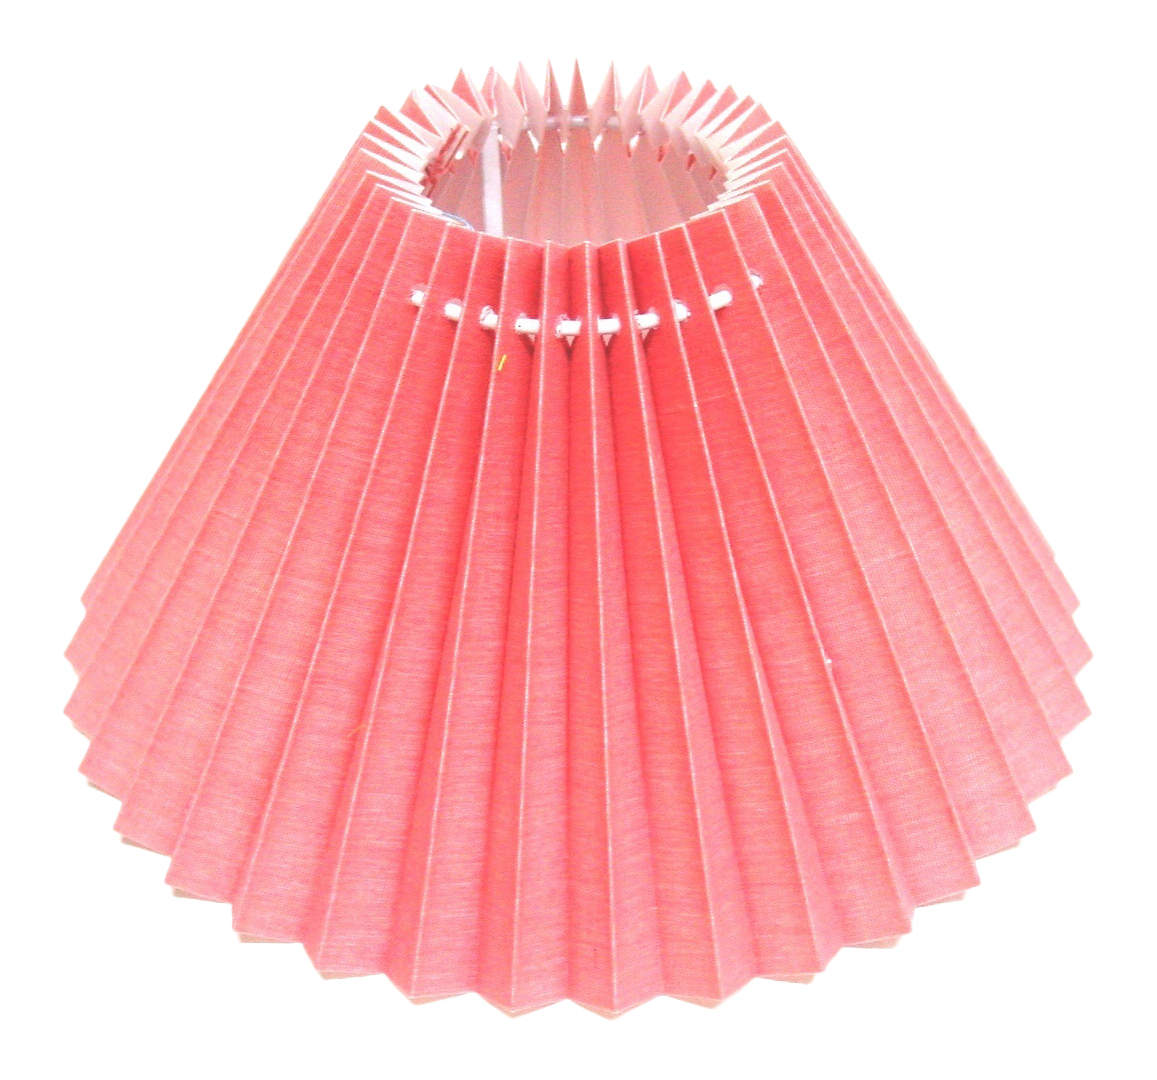 "Pleated Lamp Shades For Table Lamps: New 12"" Pleated Coolie Pendant Ceiling Table Lamp Shade"